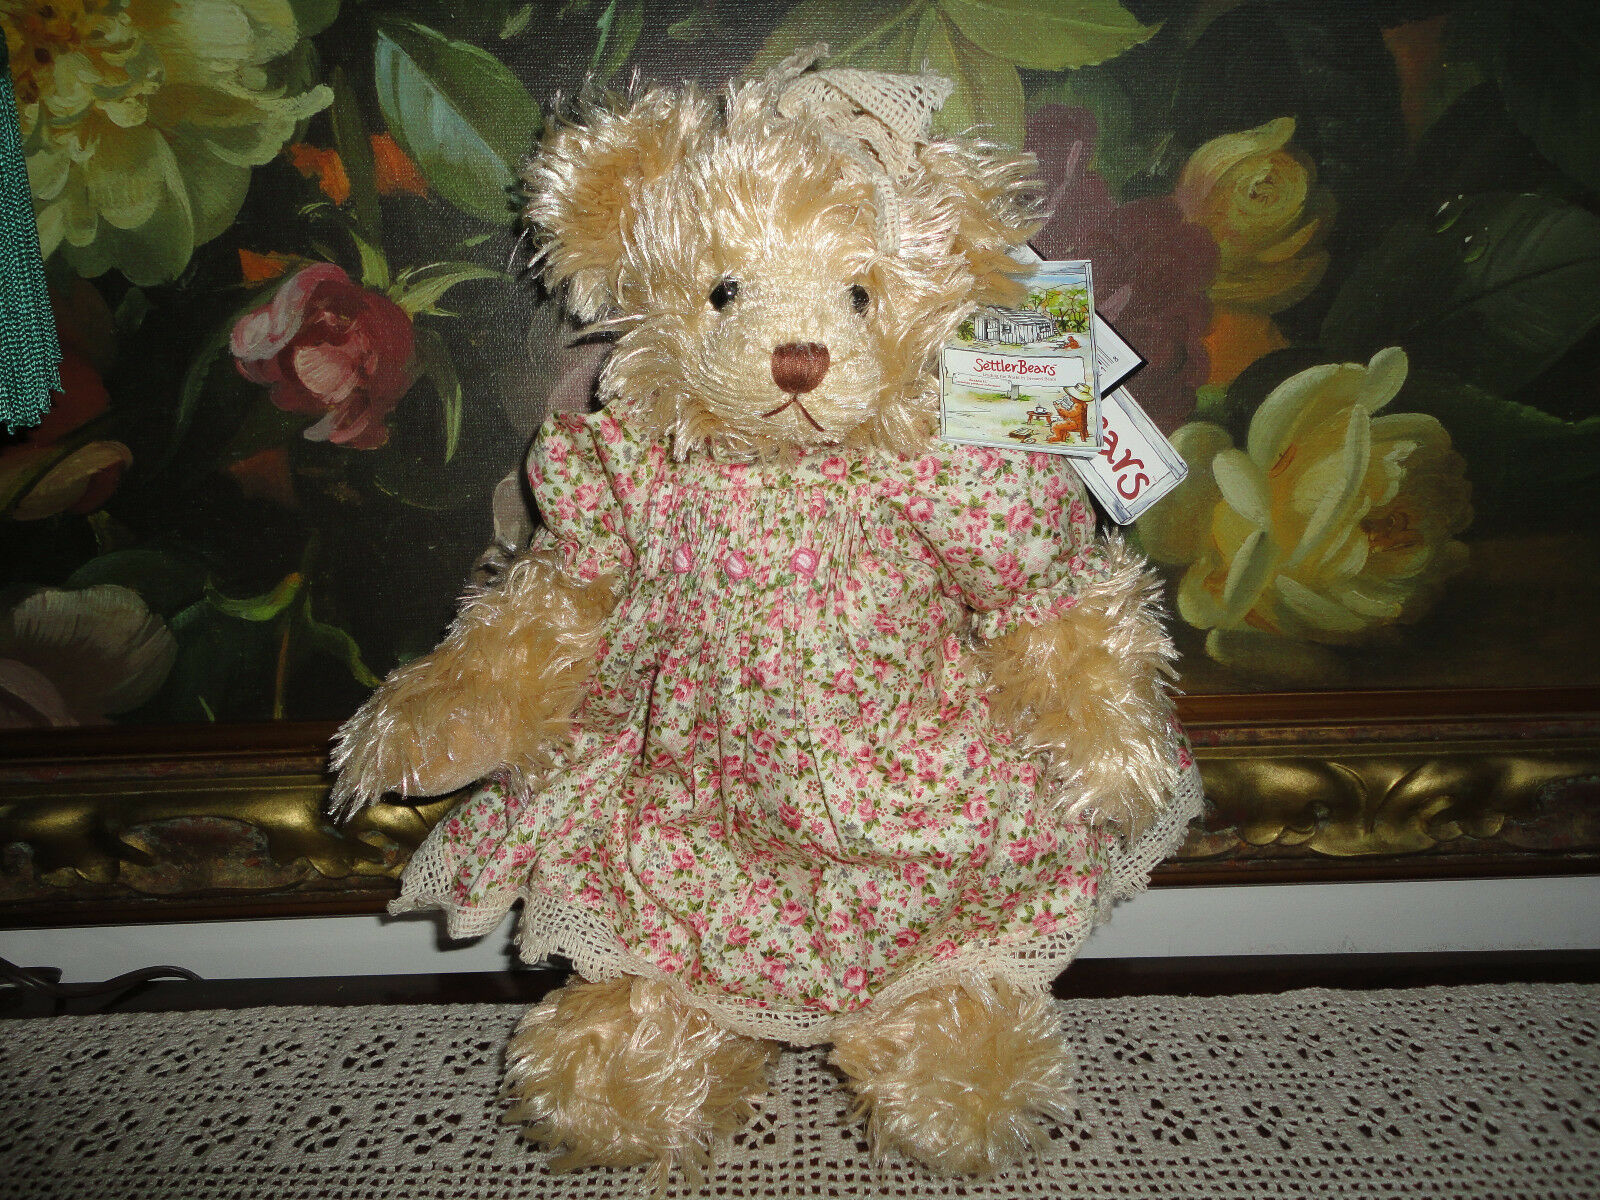 Settler Bears Australia JOAN Catalogue Booklet All Tags Rose Dress 14in Jointed